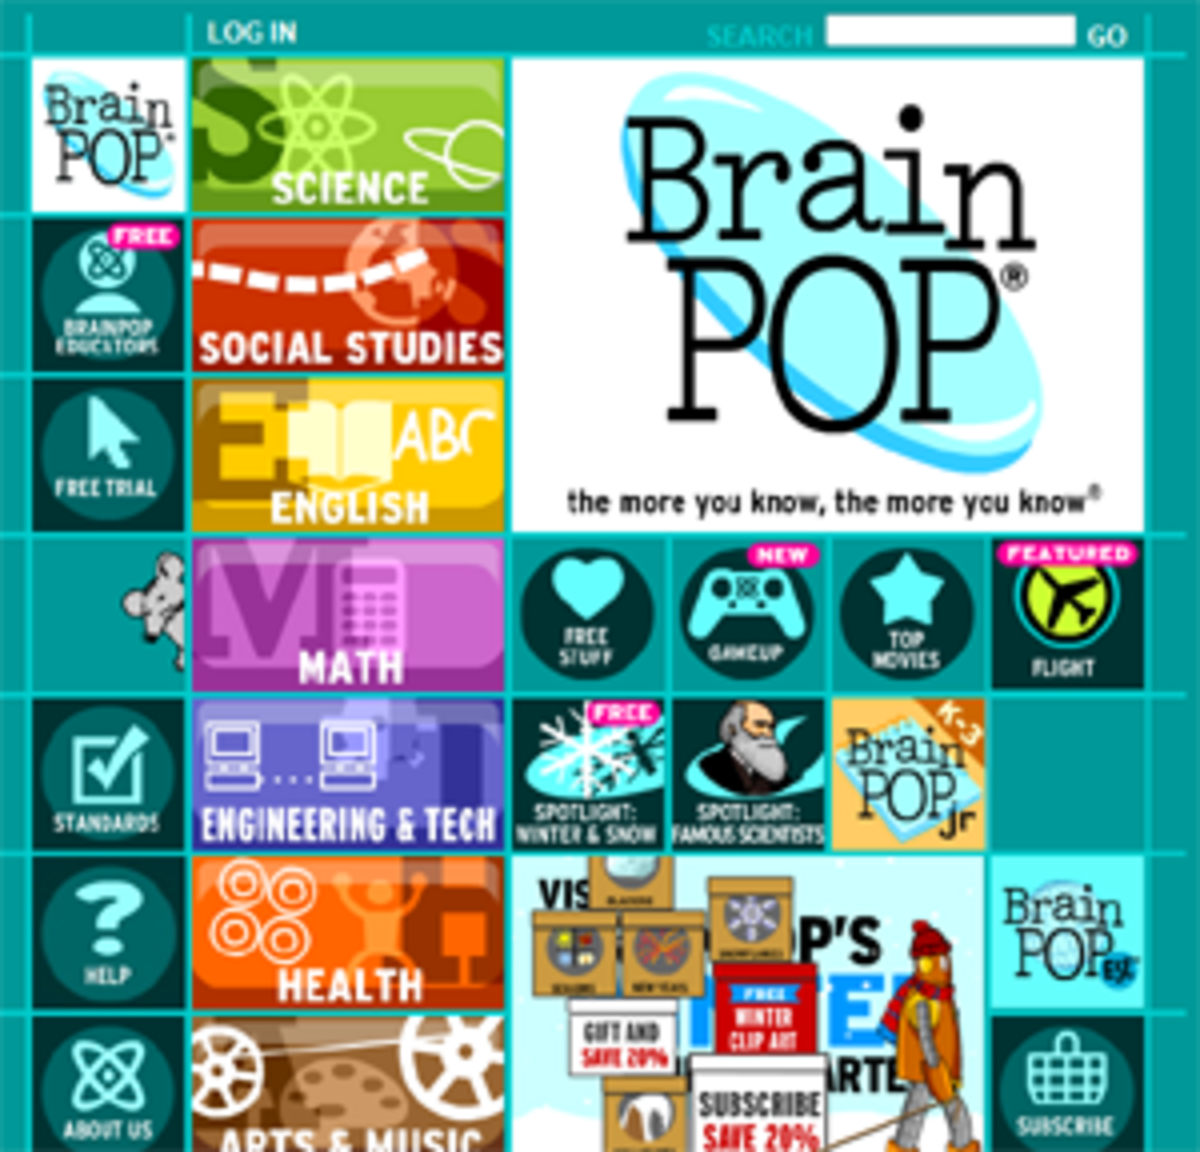 BrainPop and BrainPopJr are general knowledge websites for kids that cover science, math, social studies and more.